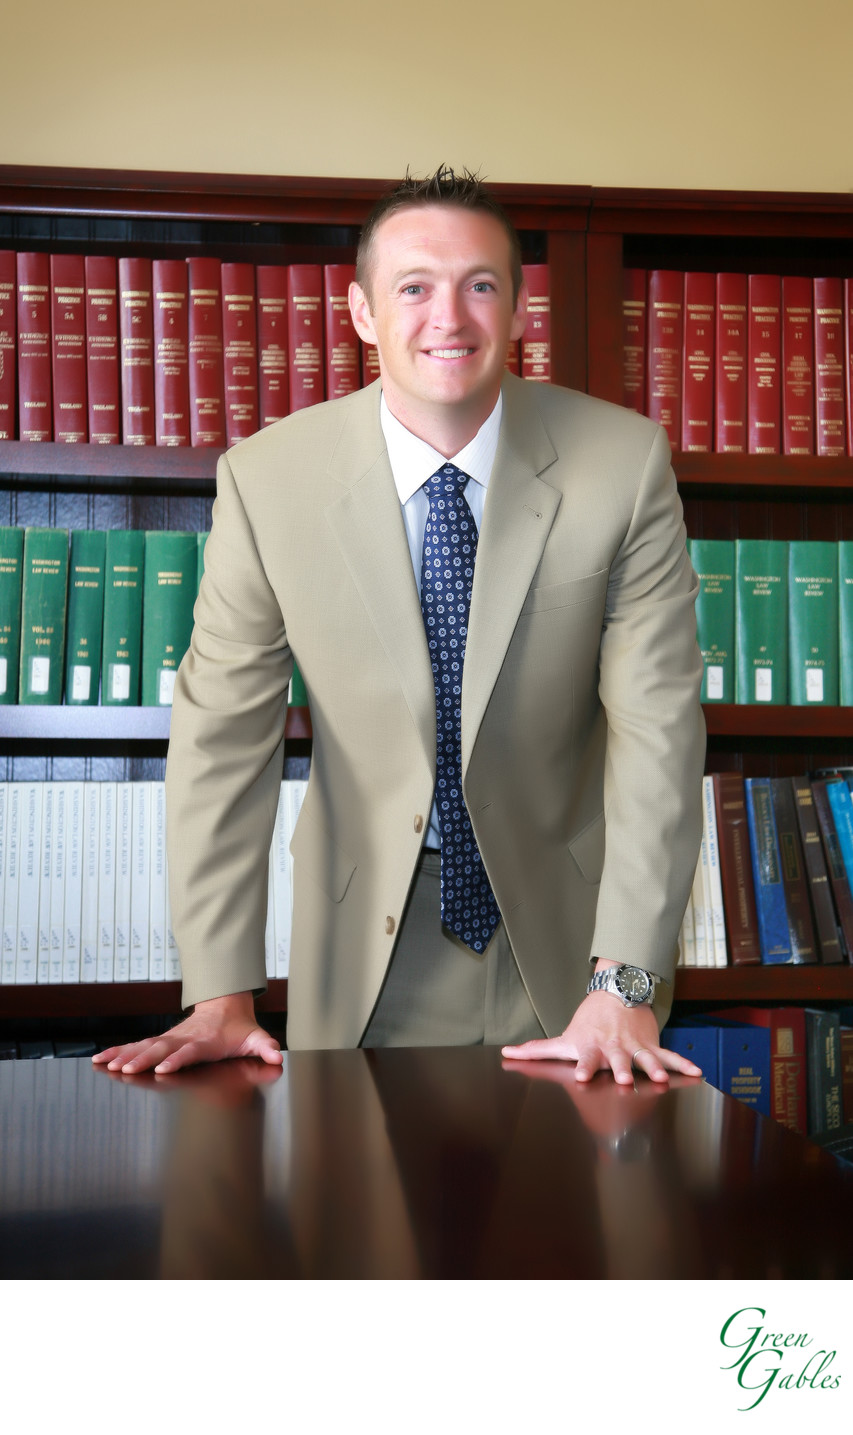 Attorney in his office